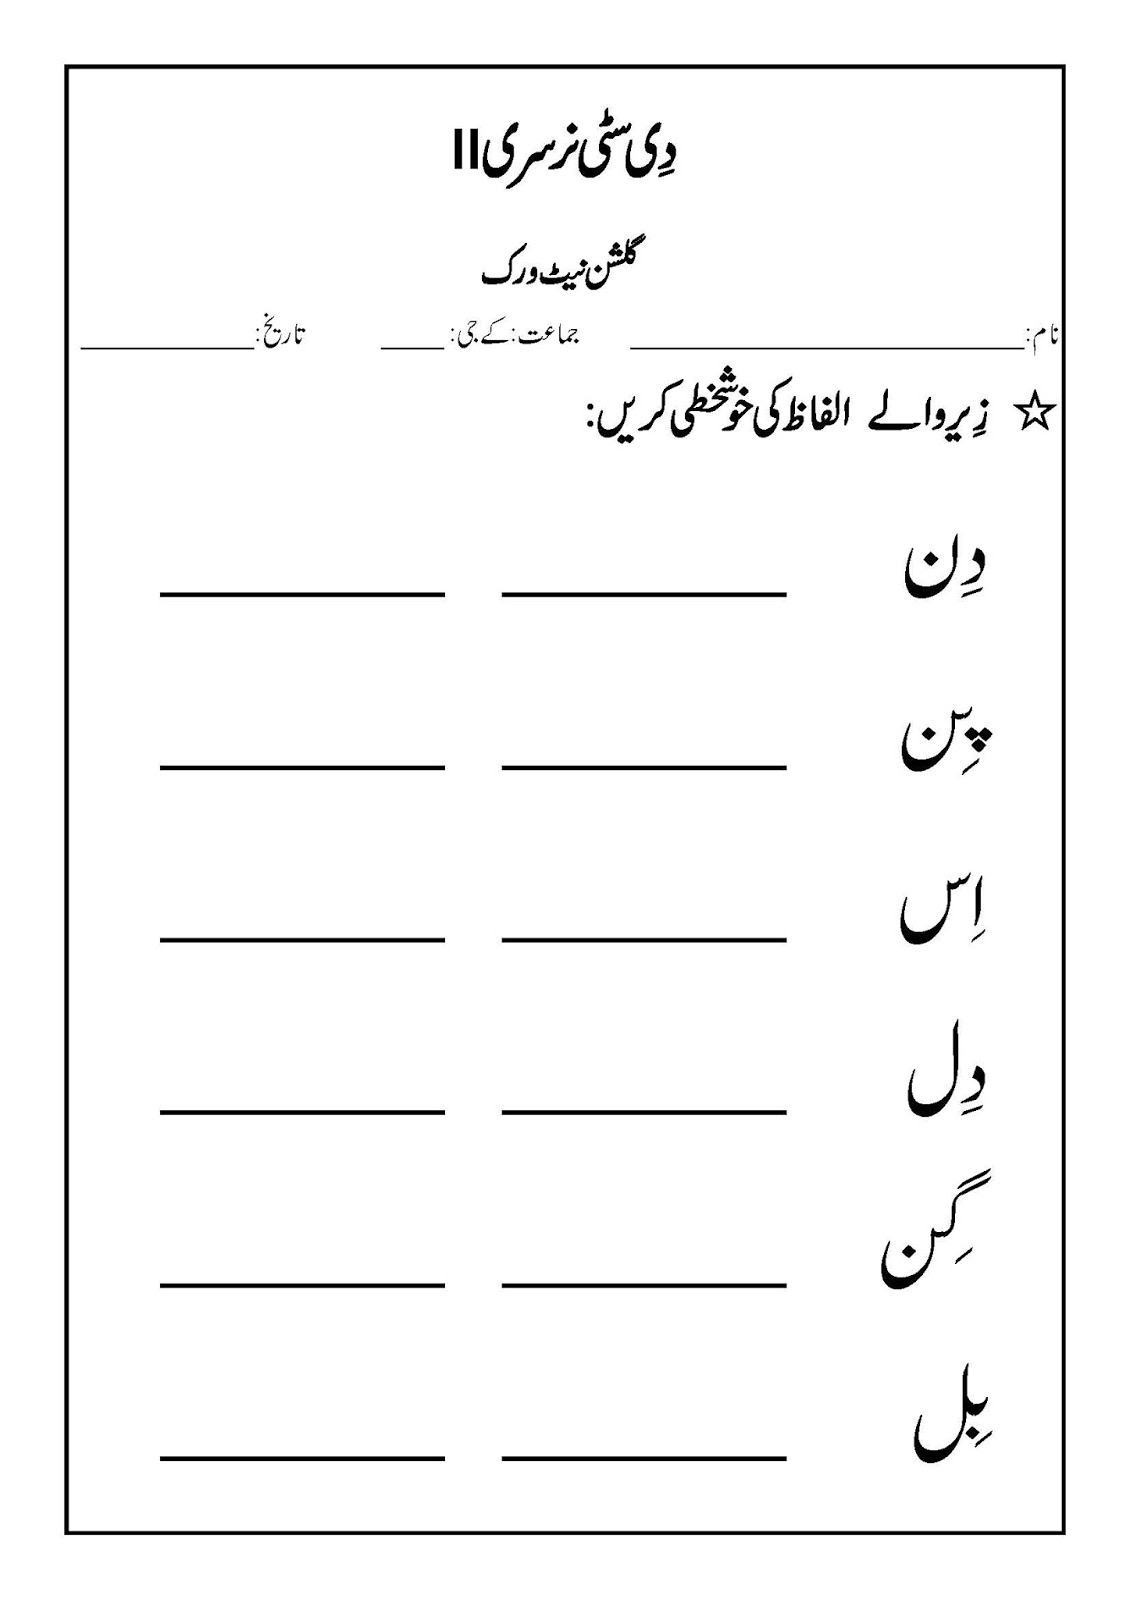 Urdu Worksheet For Class 1